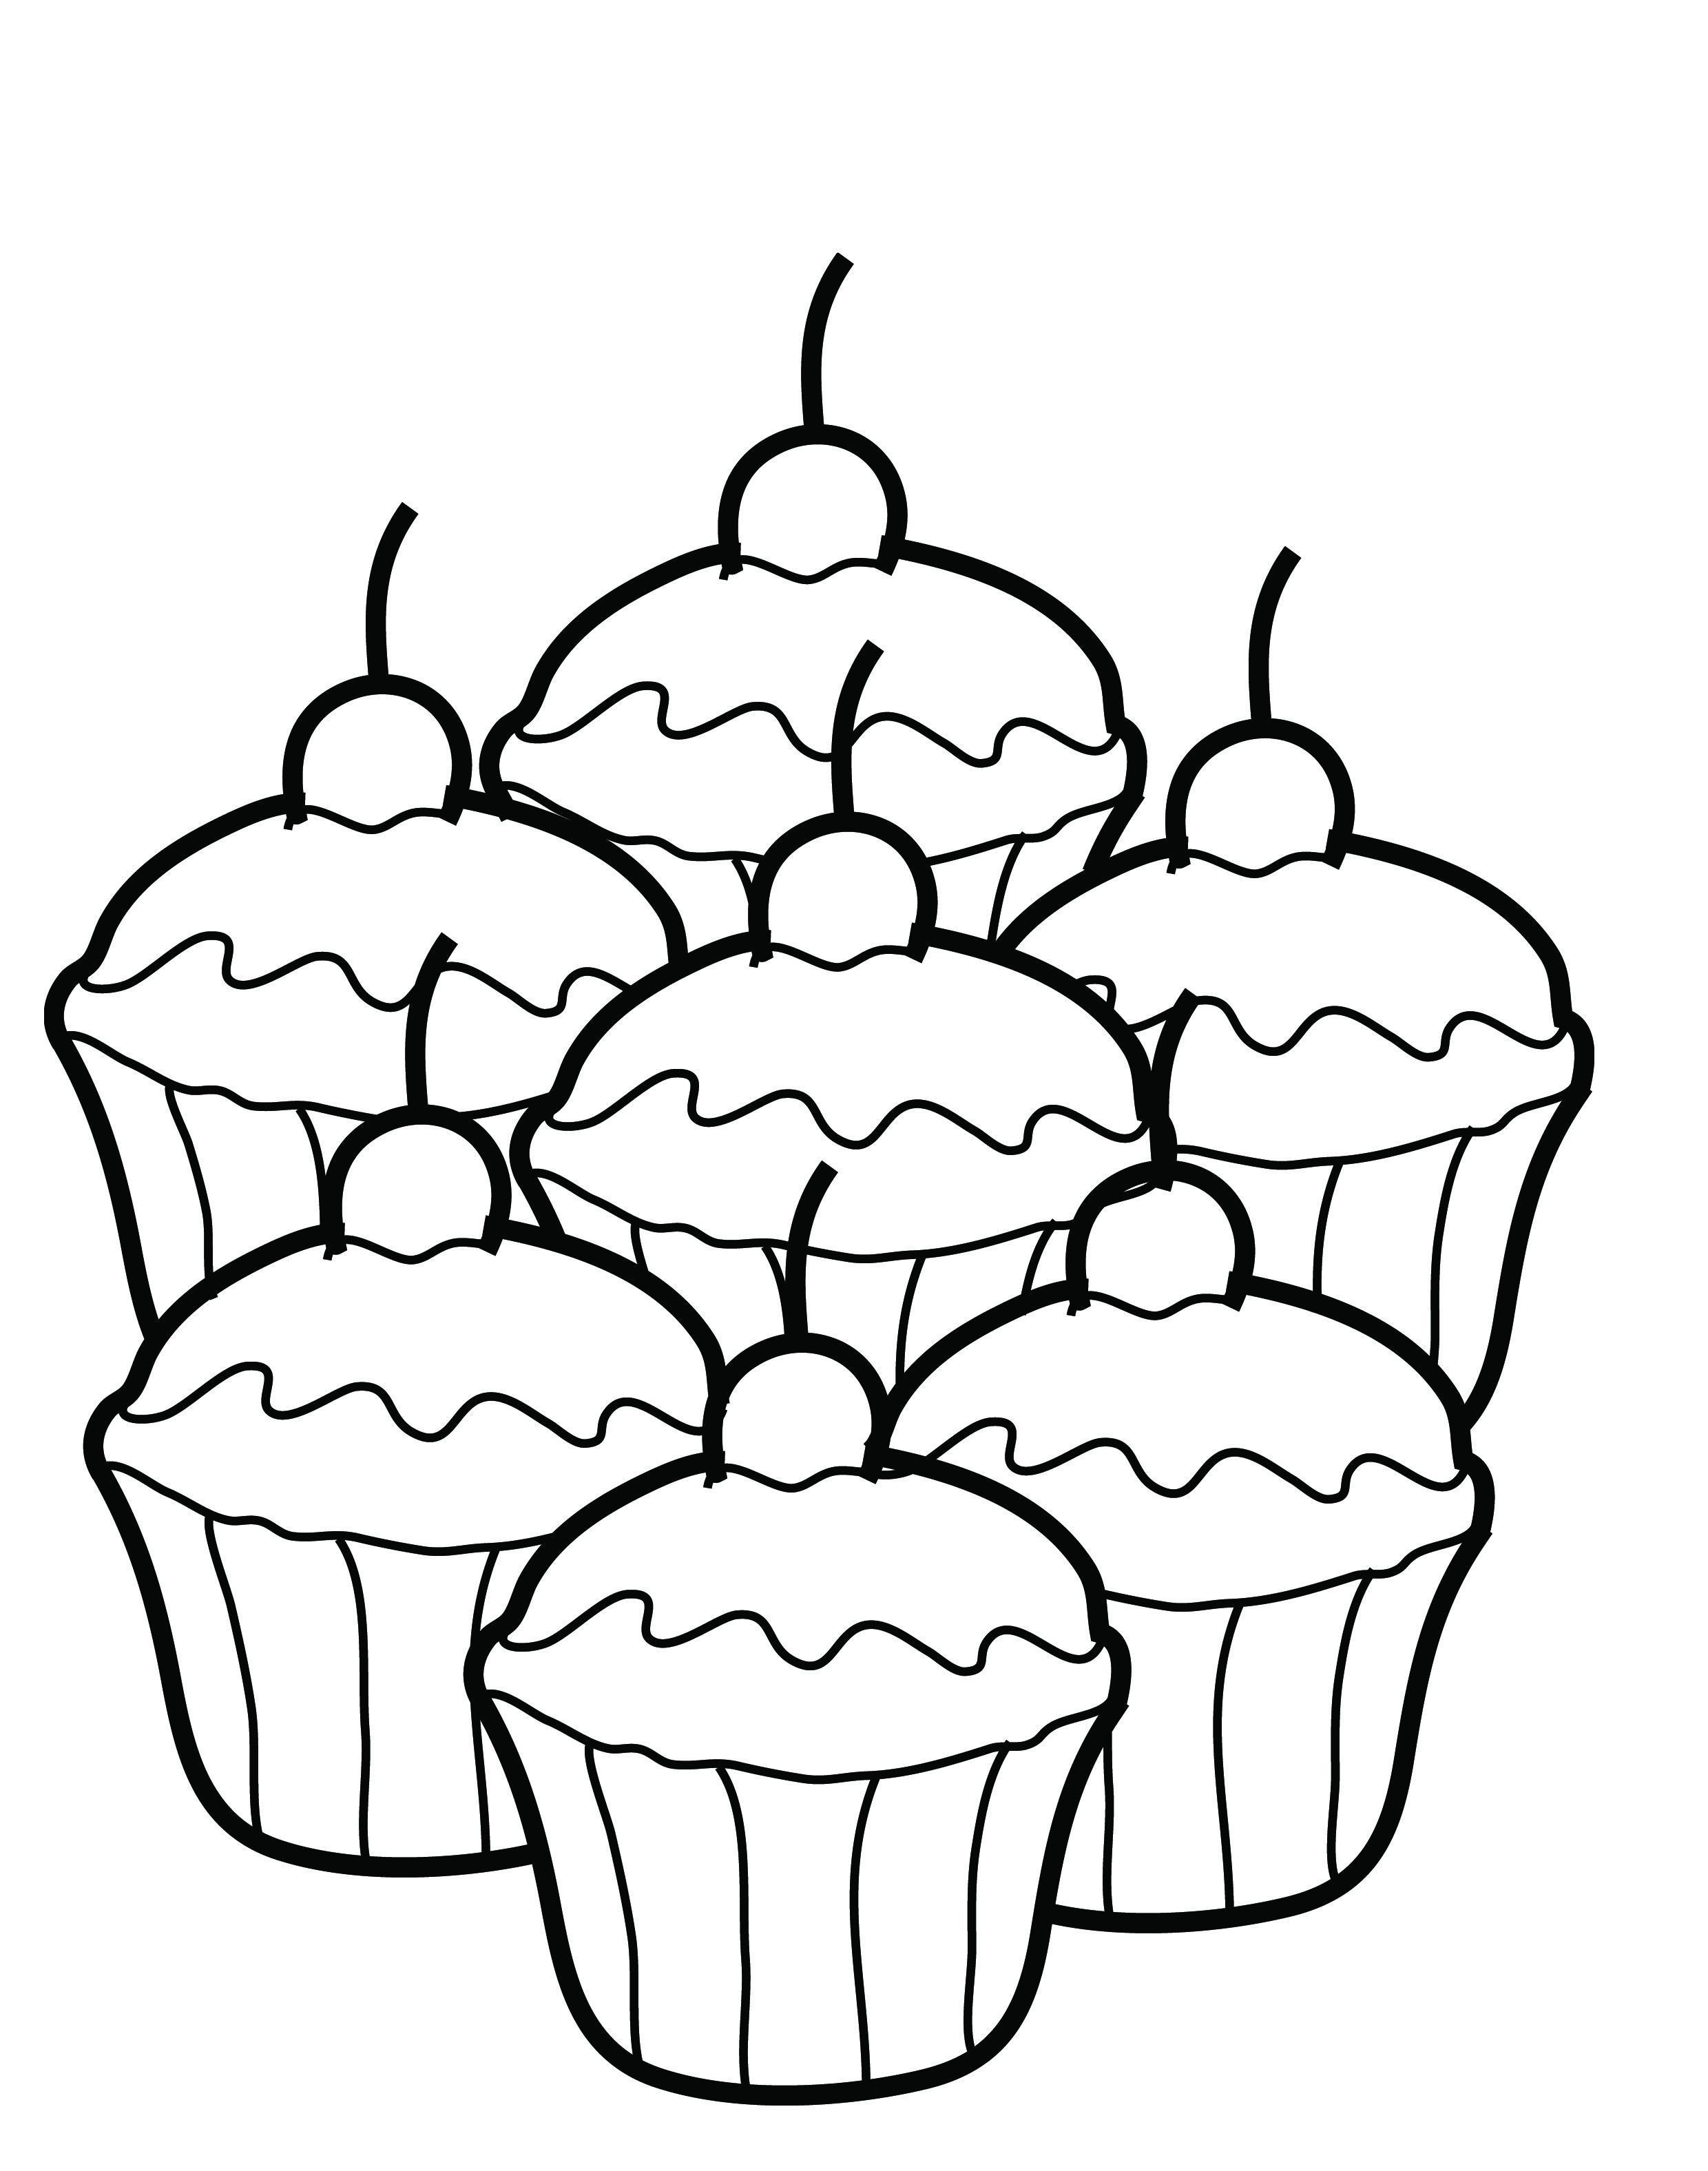 Colouring Pages To Print For Free : Free printable cupcake coloring pages for kids